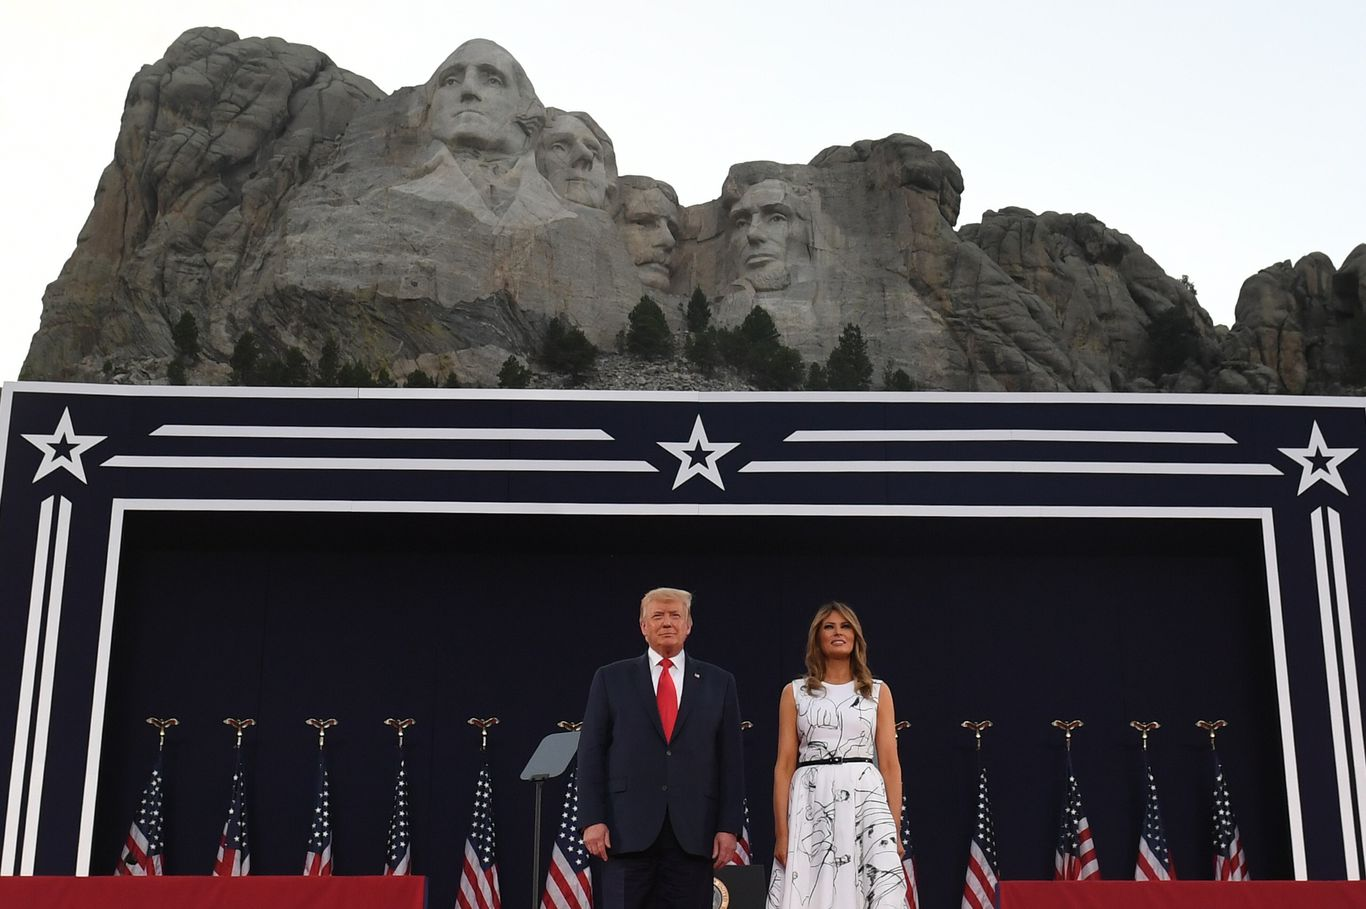 Trump casts himself as chief defender of American history in divisive speech at Rushmore